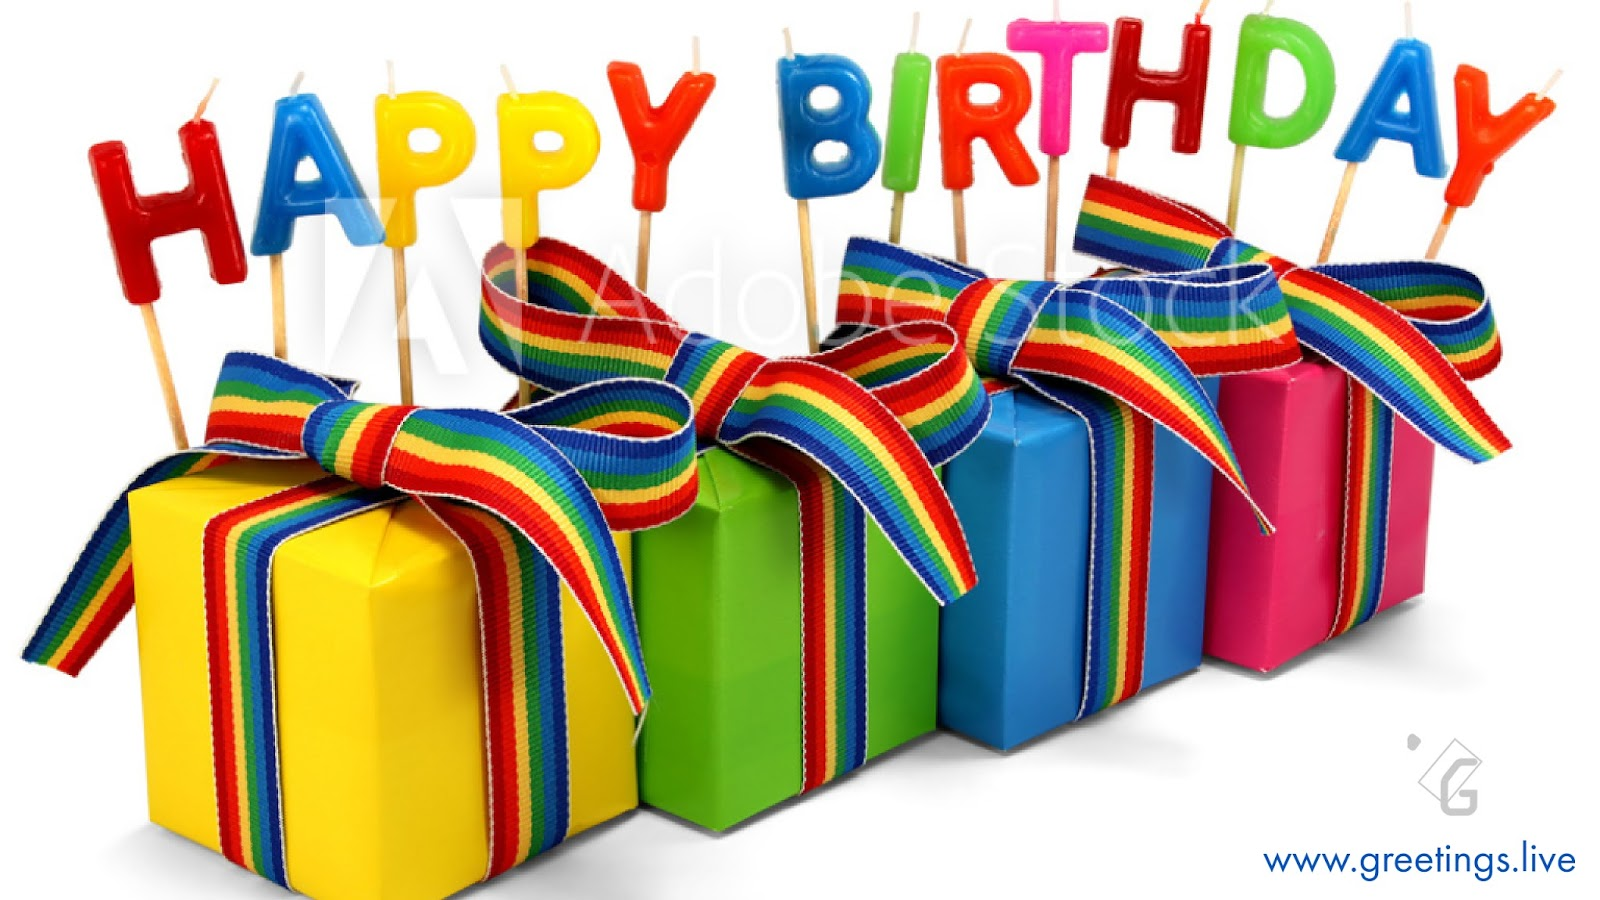 Gift box images hd alleghany trees happy birthday wishes with gift box images hd negle Images